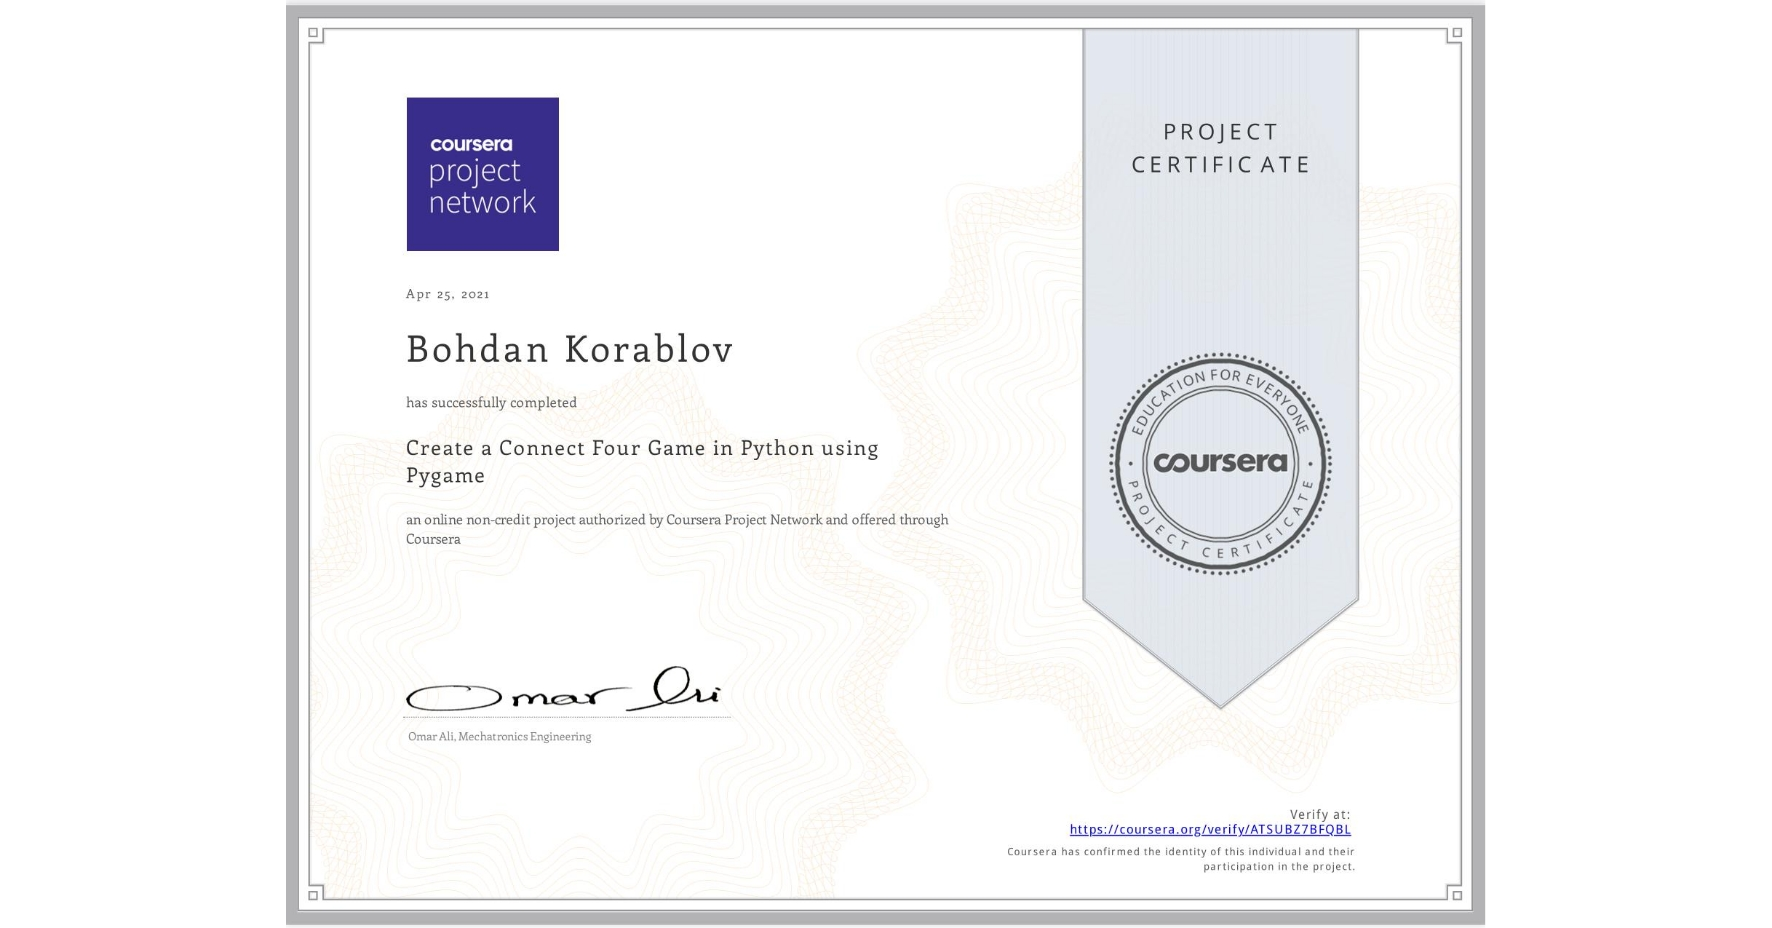 View certificate for Bohdan Korablov, Create a Connect Four Game in Python using Pygame, an online non-credit course authorized by Coursera Project Network and offered through Coursera